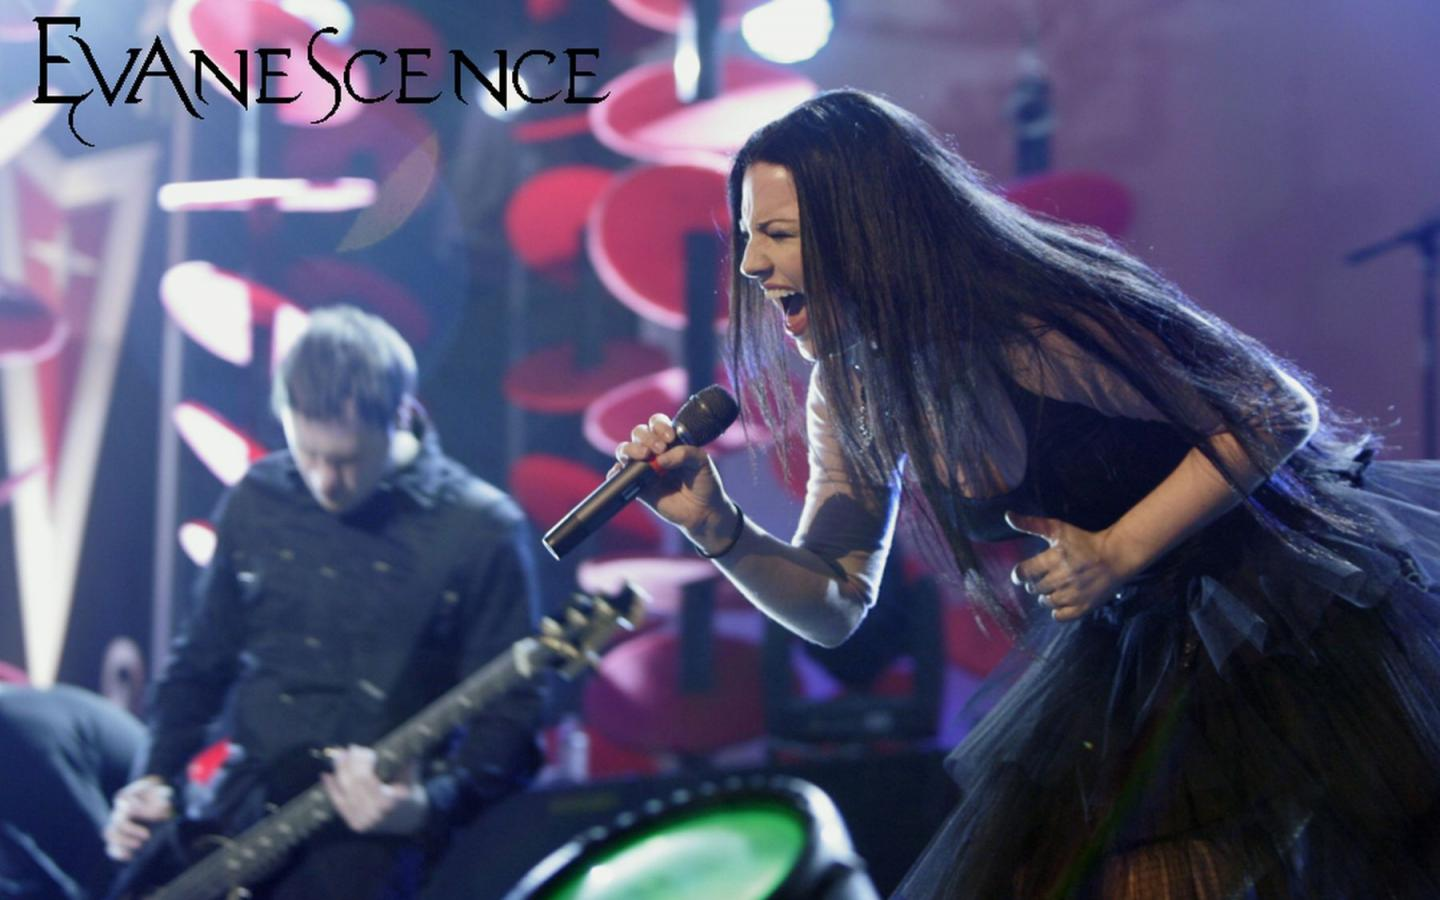 Evanescence wallpaper HQ WALLPAPER   168004 1440x900